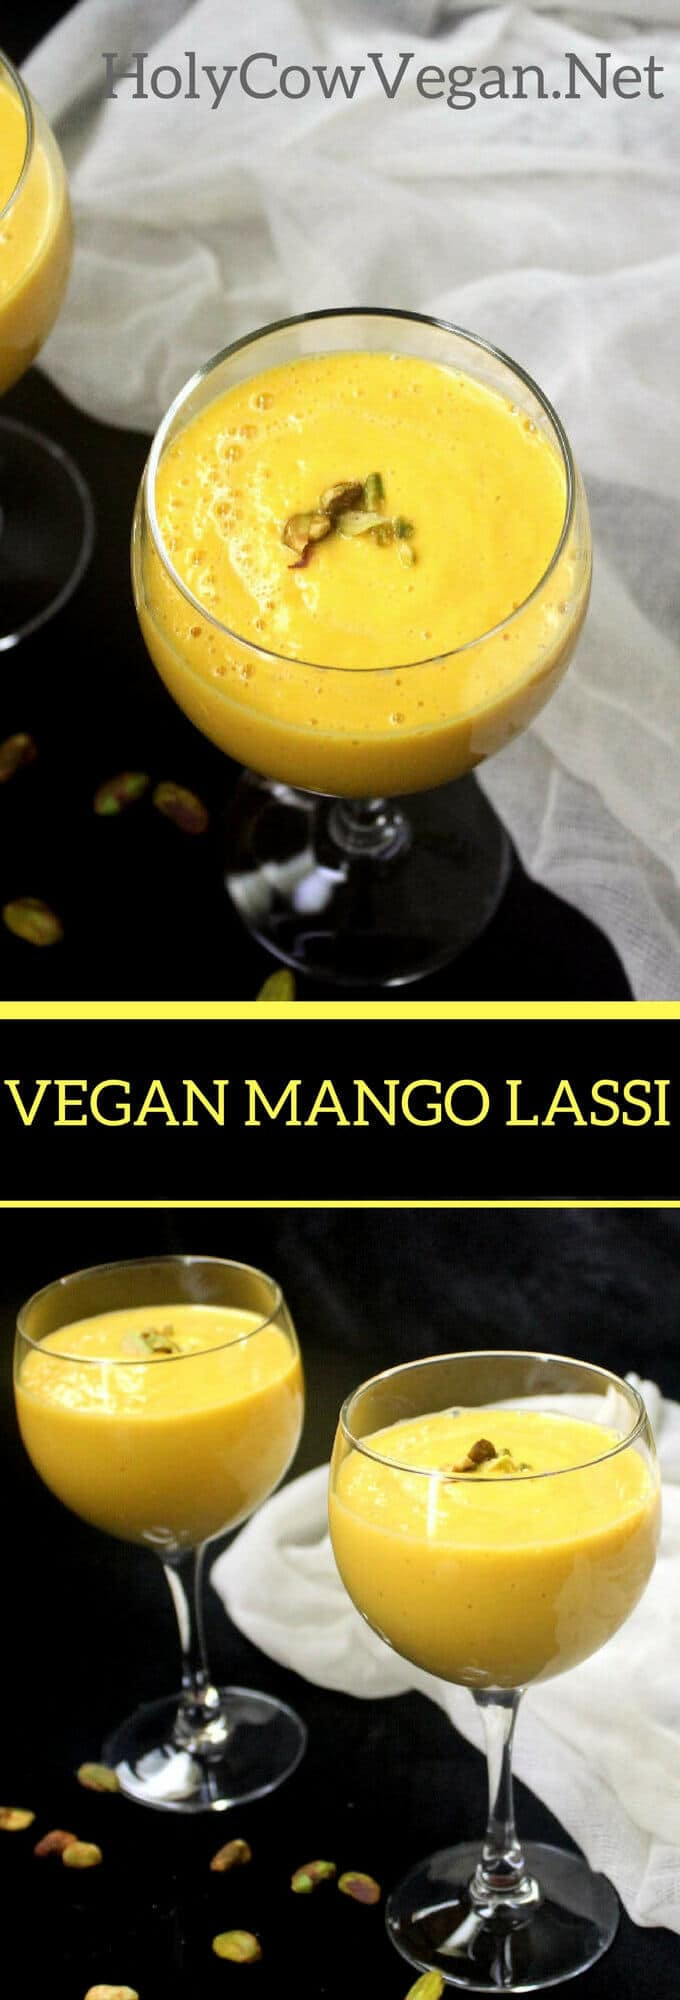 I Love My Lassi Thick And Creamy, But If You Want It To Be More Fluid, Add  More Cashew Milk You Might Need To Add A Little More Sugar To Balance The  Taste